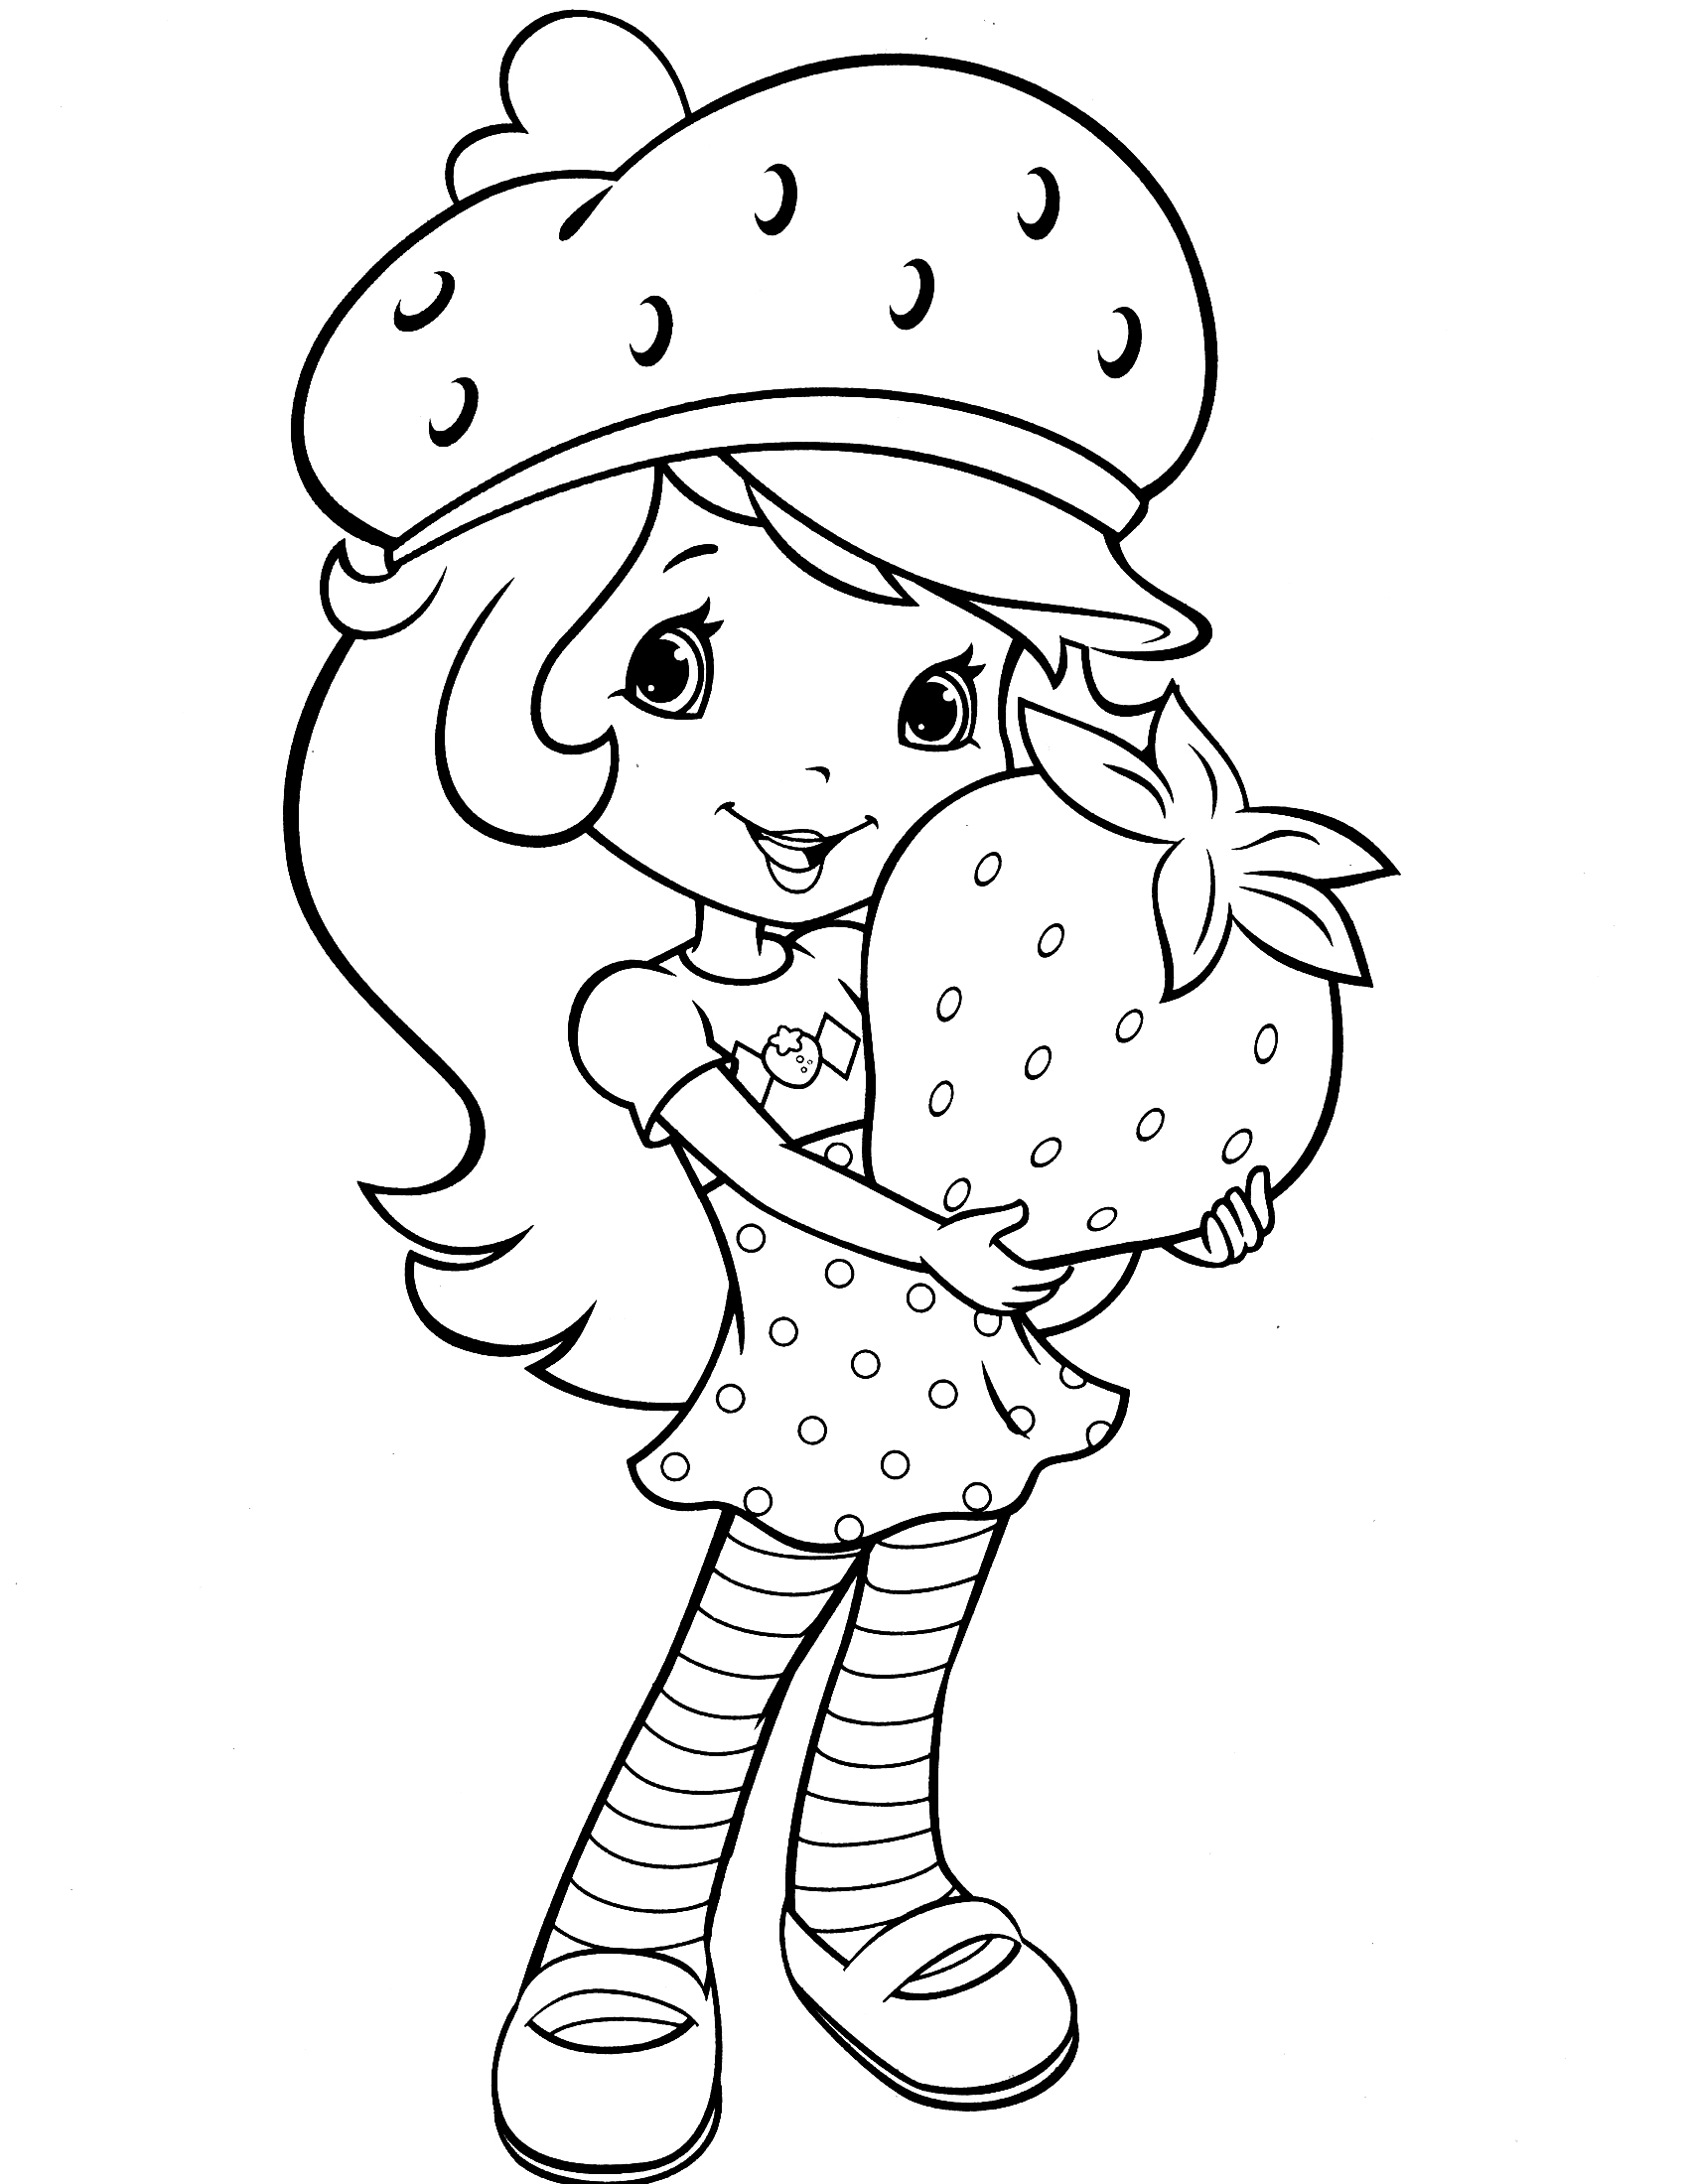 strawberry shortcake coloring pages free - photo#11